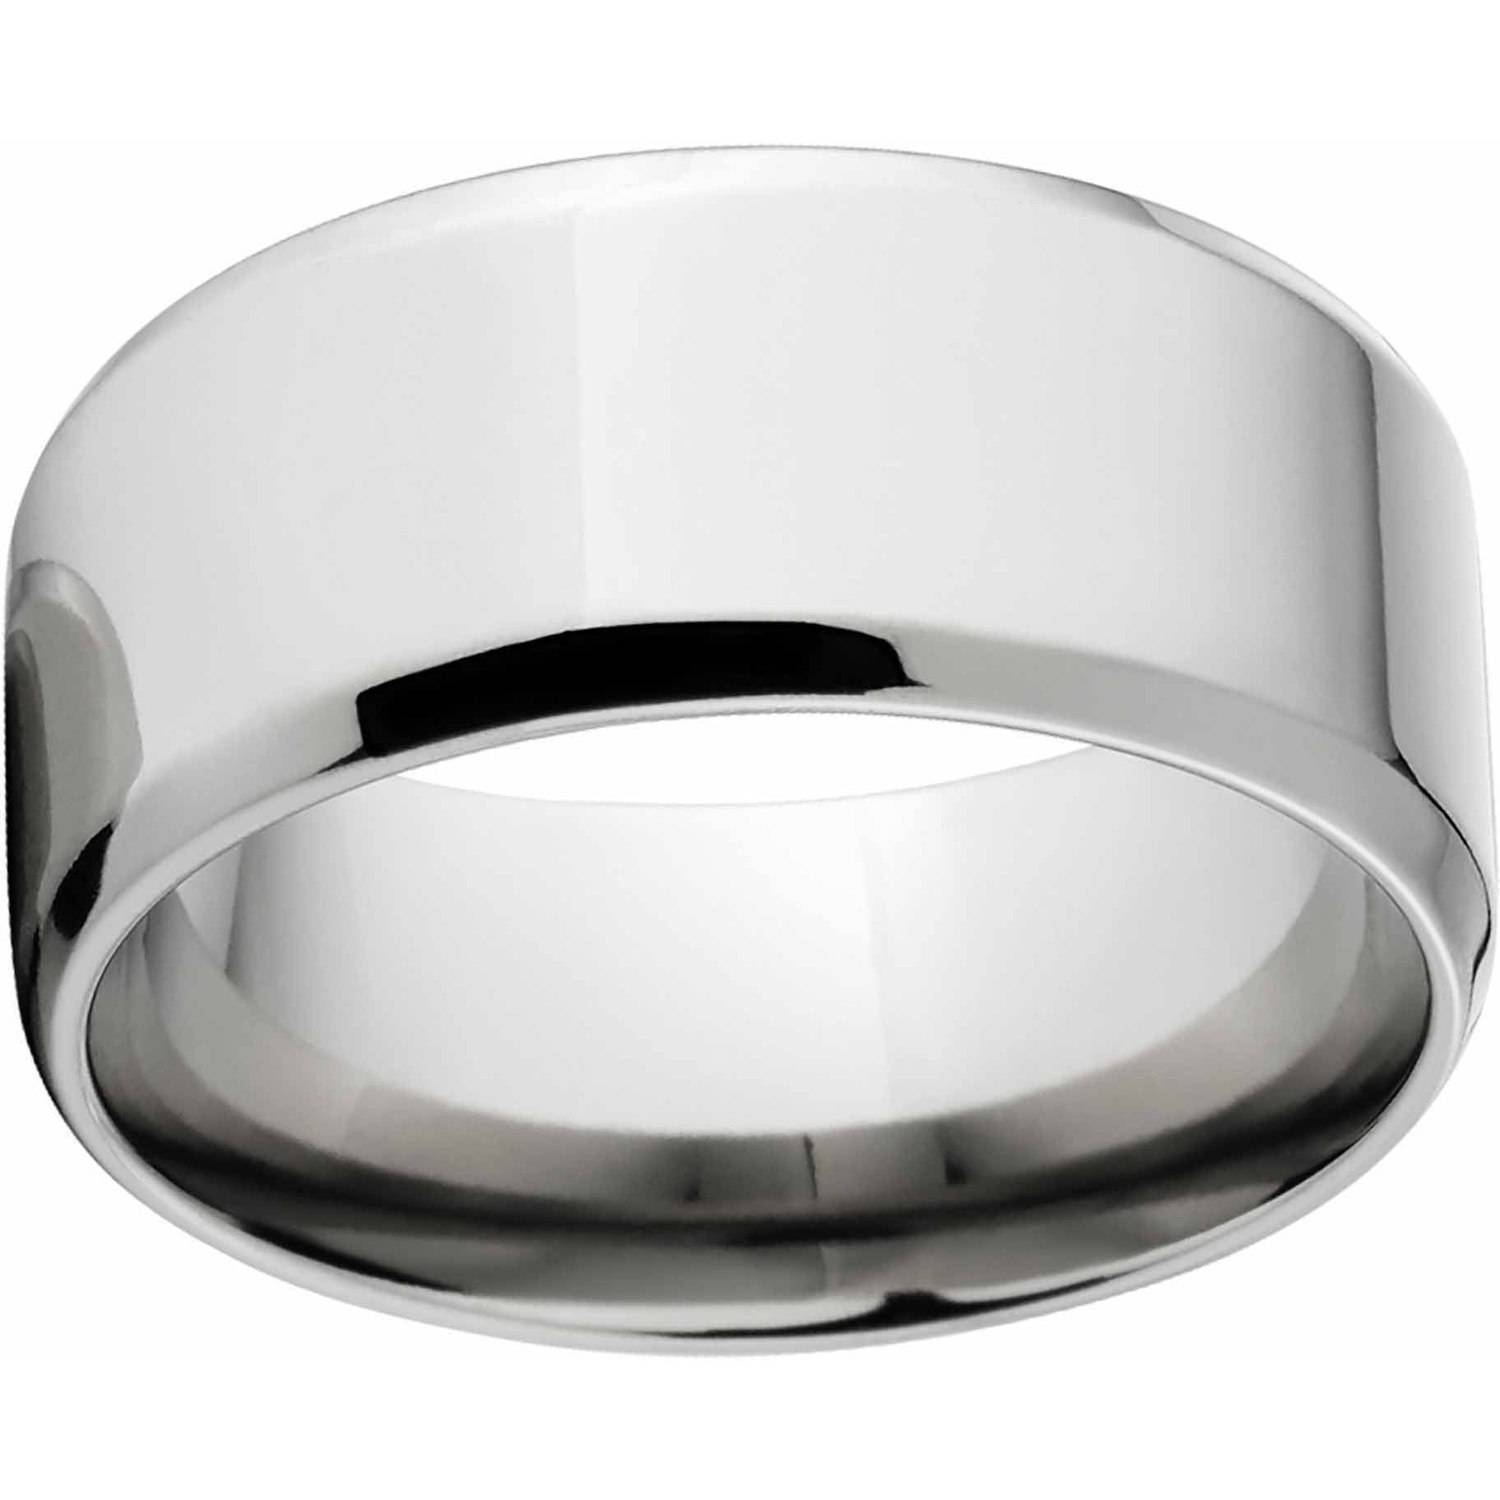 Polished 10Mm Titanium Wedding Band With Comfort Fit Design With Regard To Walmart Men's Wedding Bands (Gallery 7 of 15)